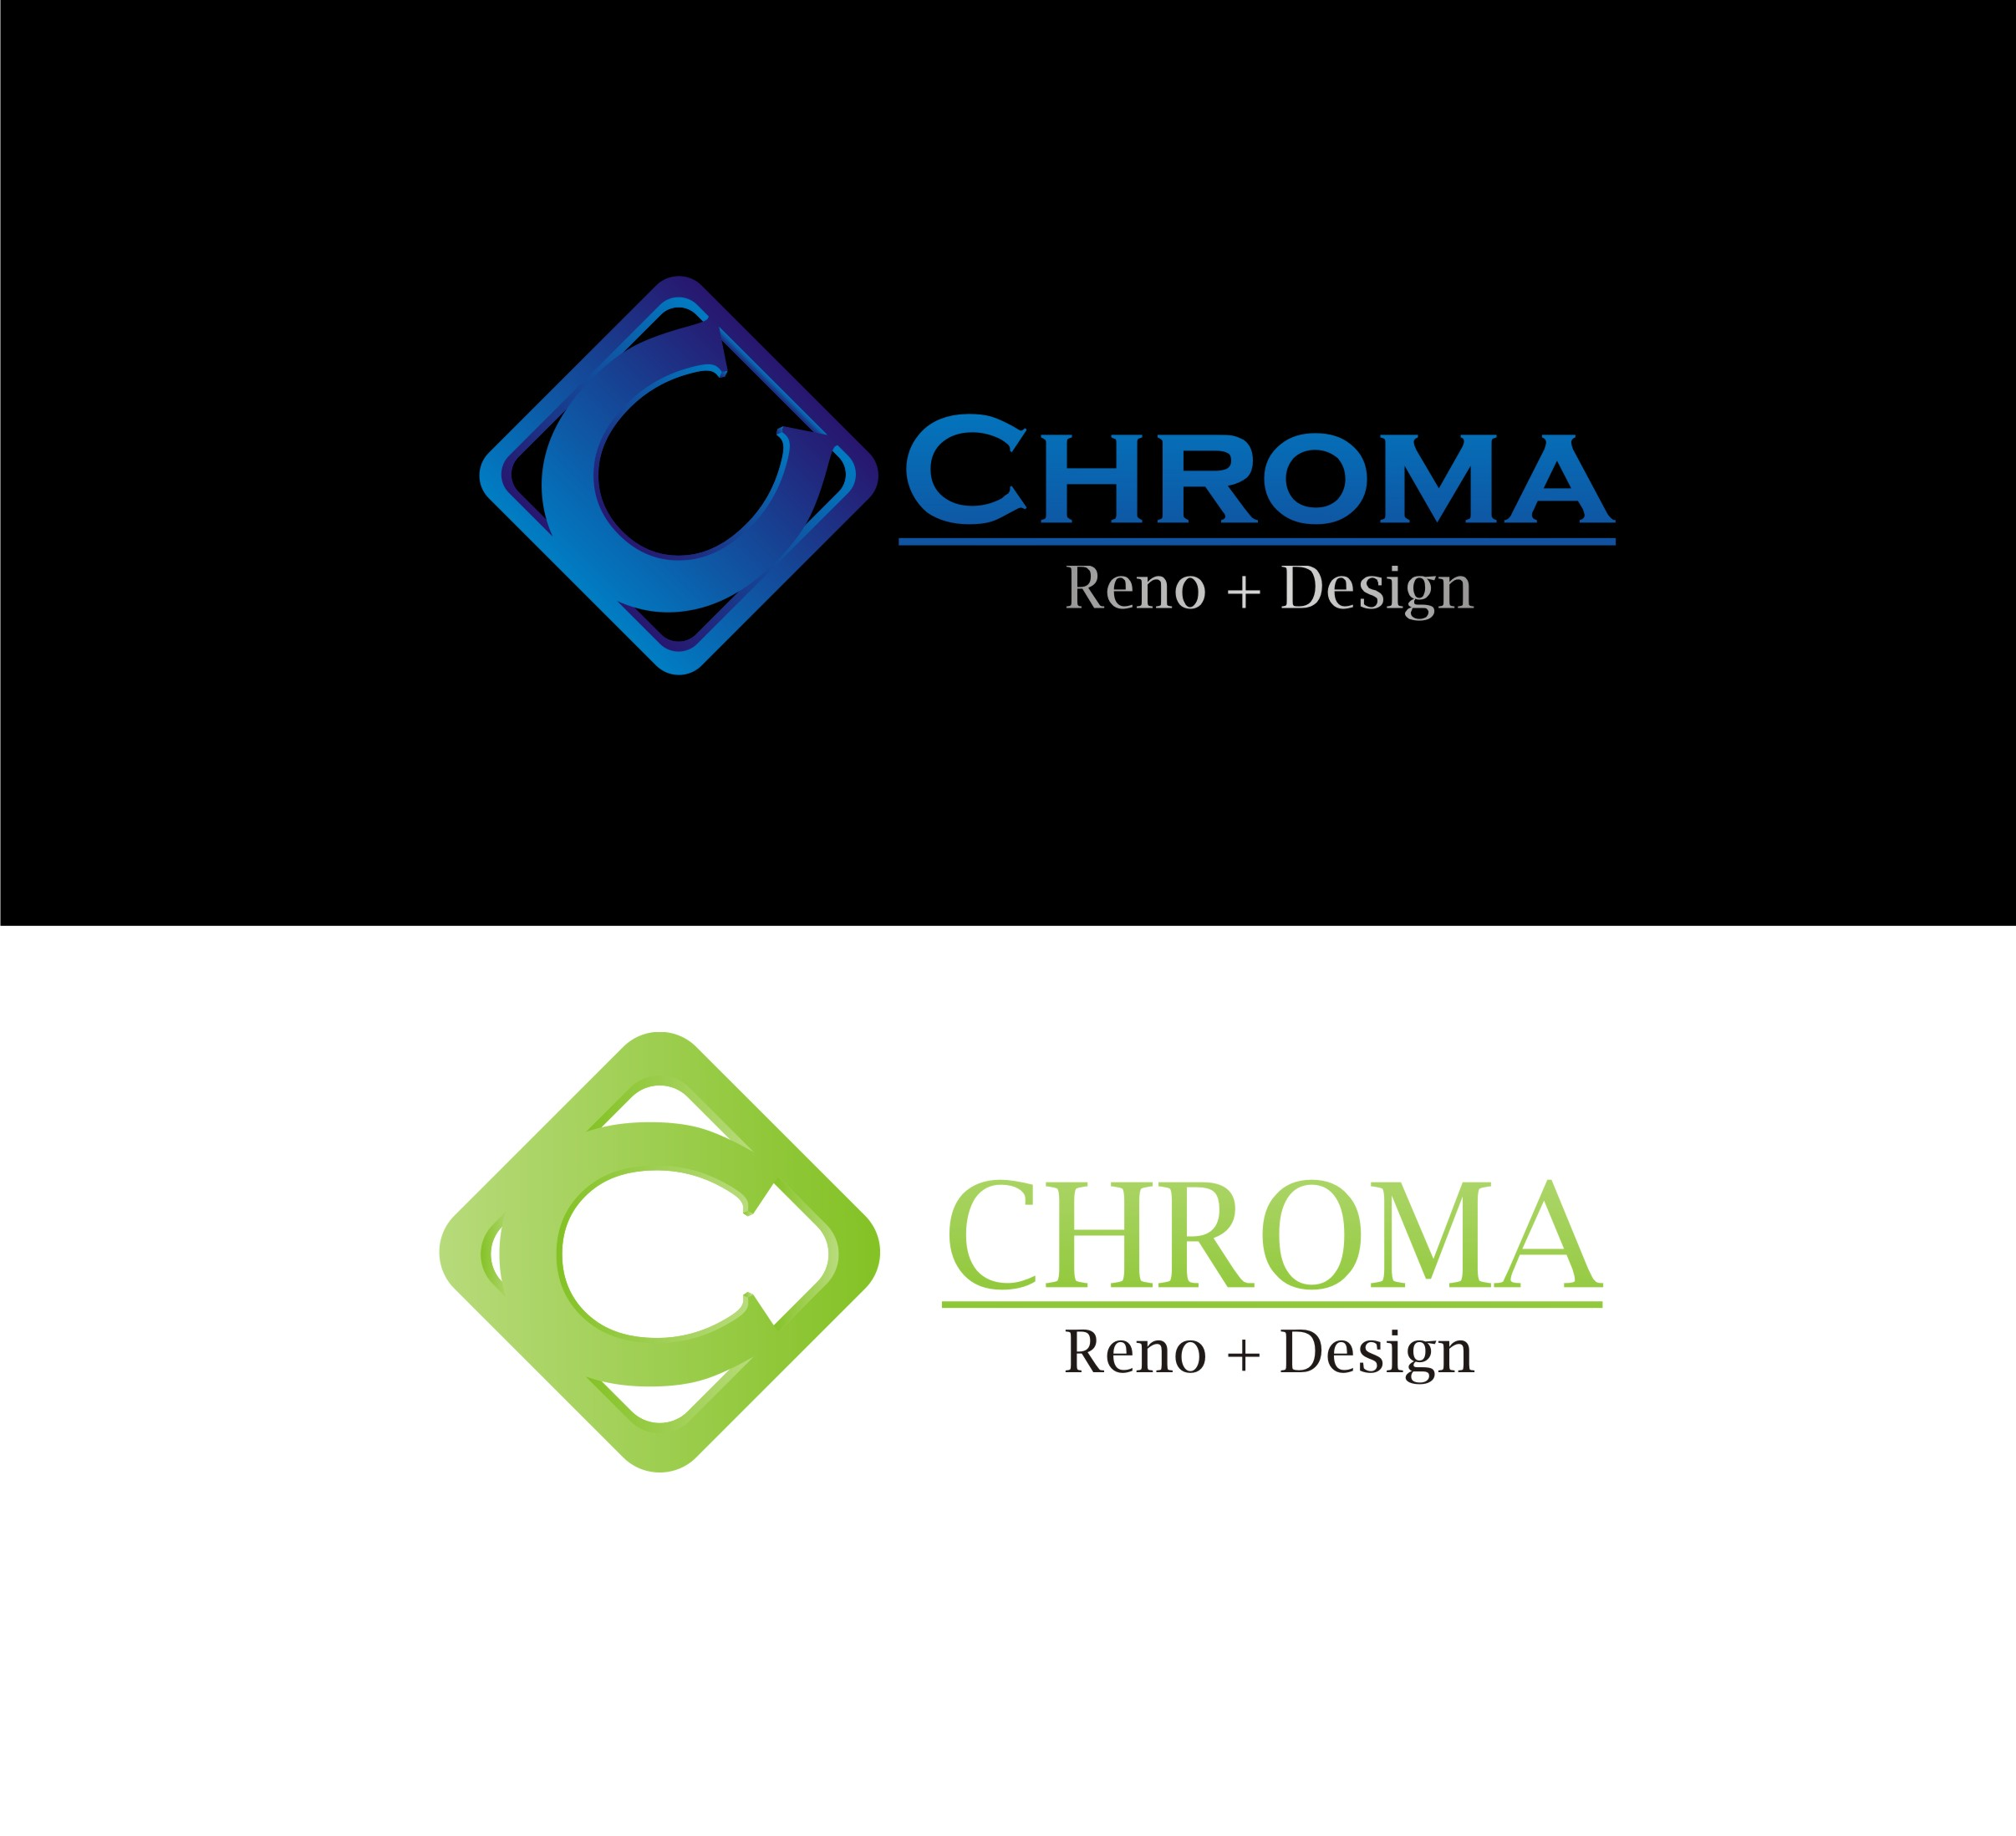 Logo Design by Yuda Hermawan - Entry No. 237 in the Logo Design Contest Inspiring Logo Design for Chroma Reno+Design.